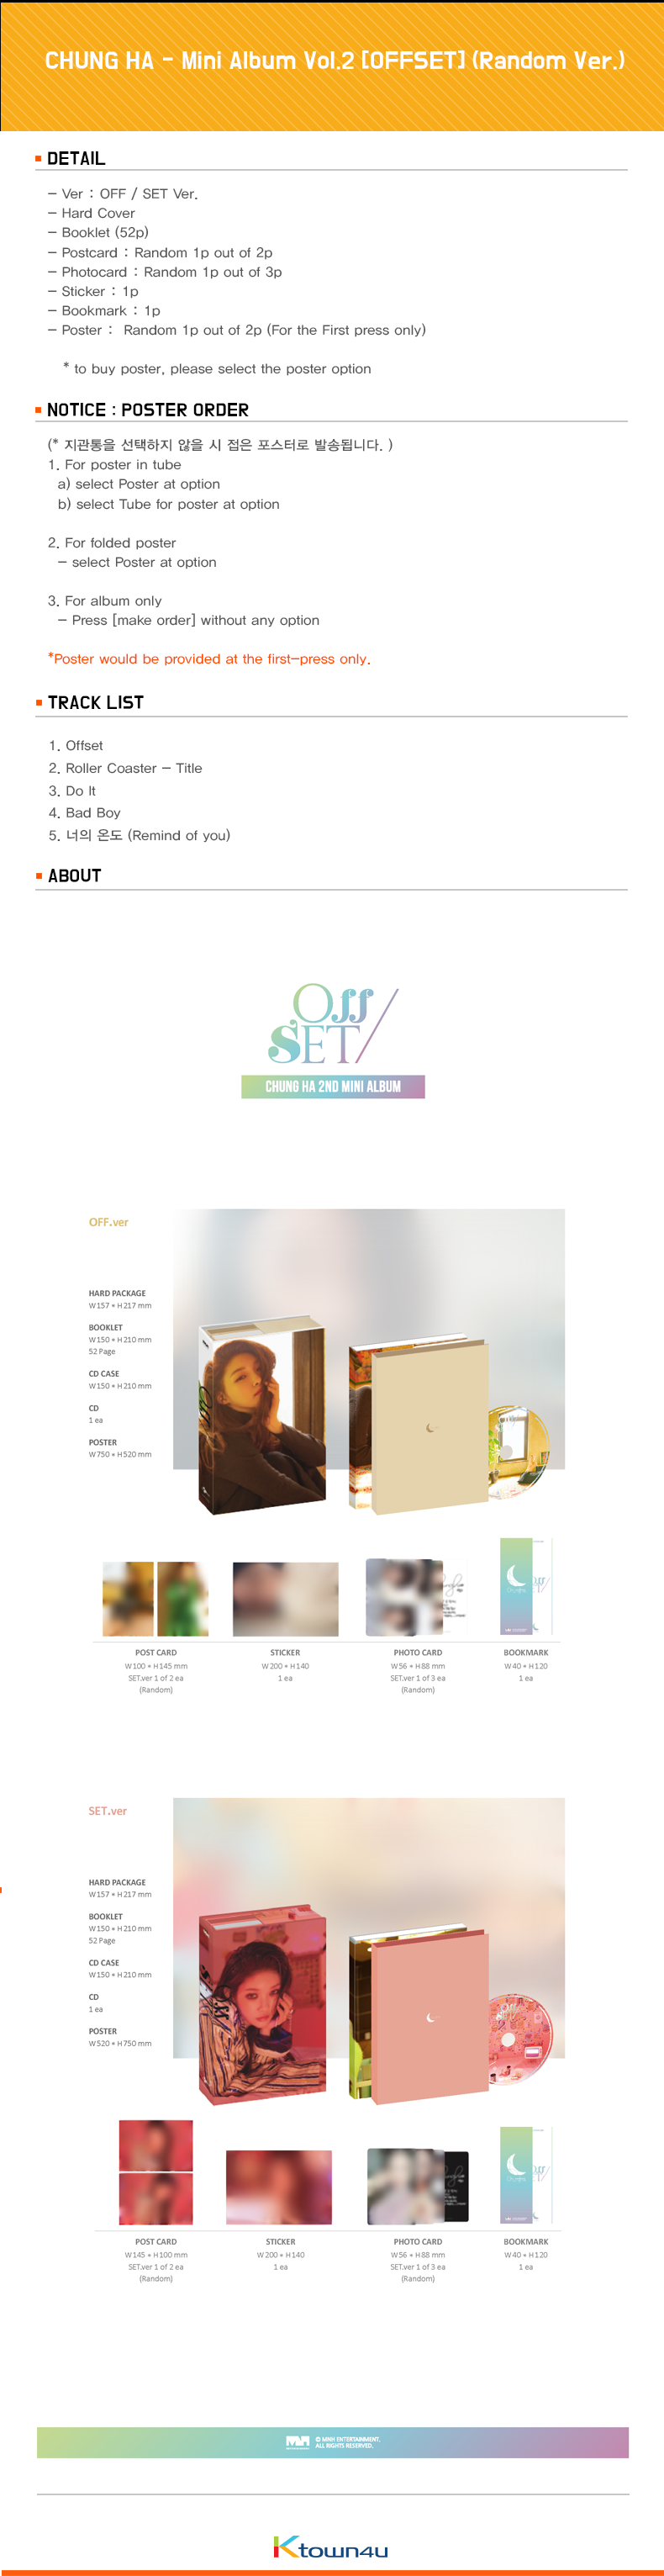 CHUNG HA - Mini Album Vol.2 [OFFSET] (Random Ver.)